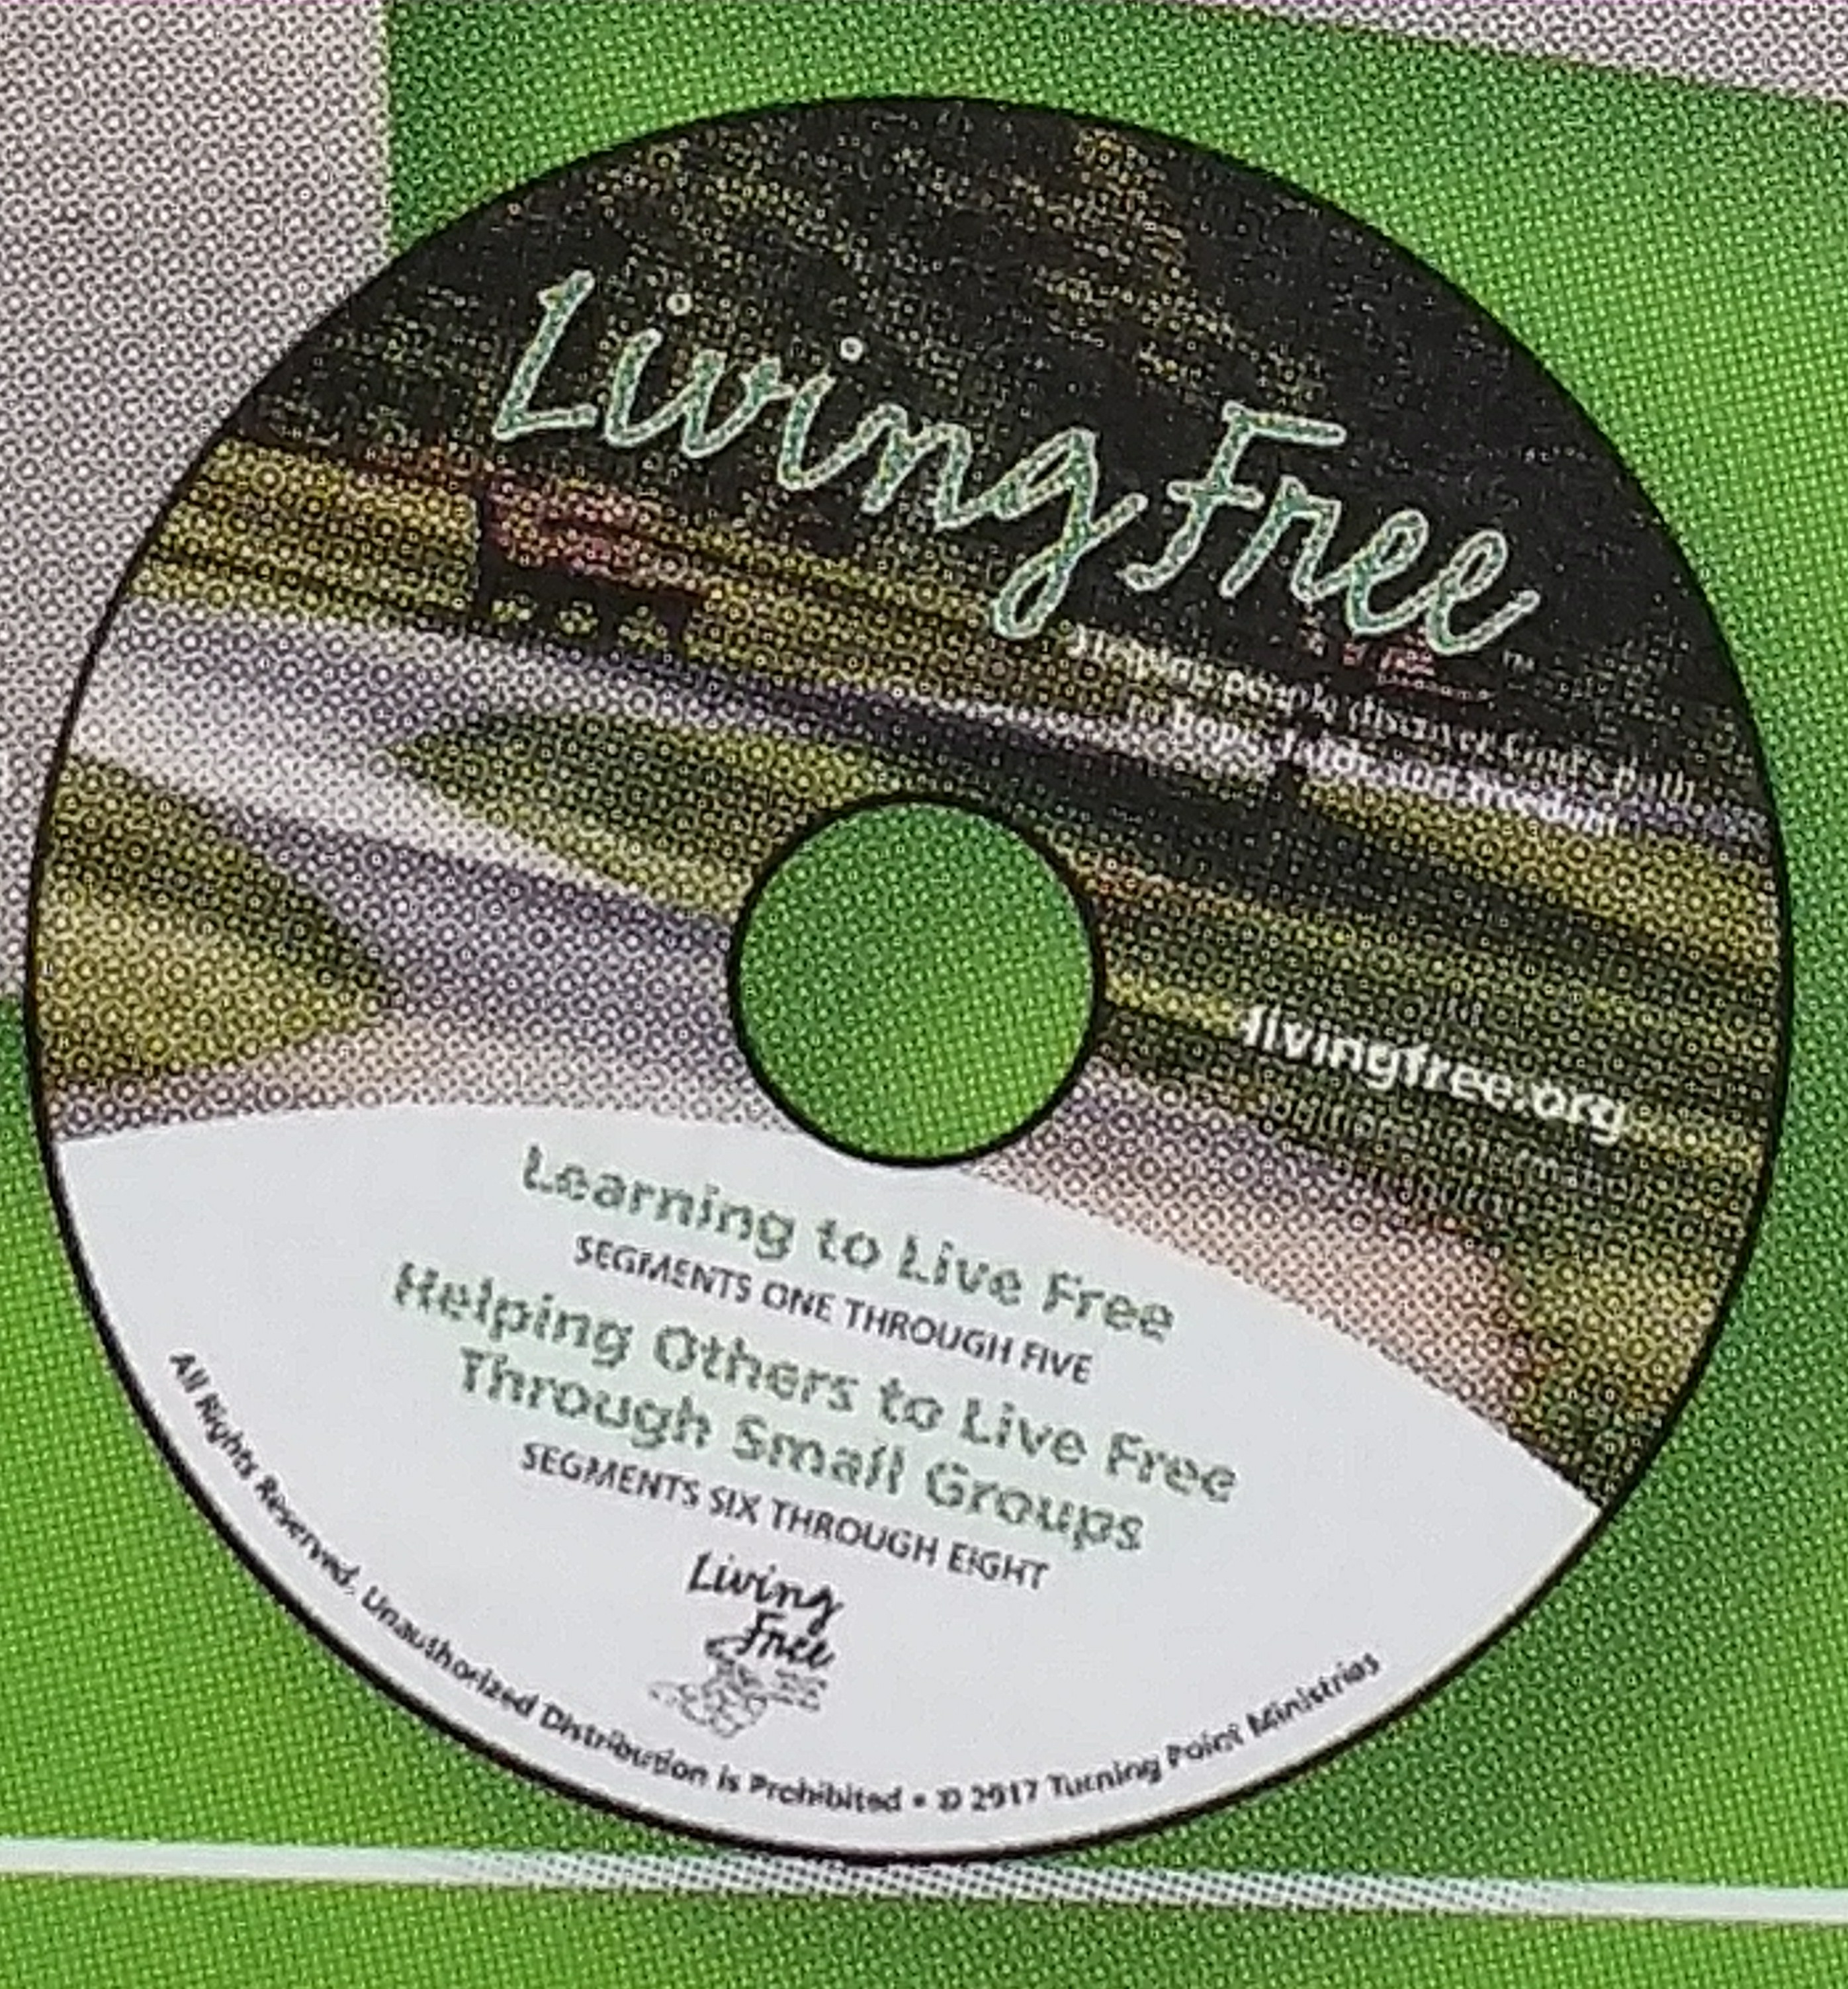 MP4 for Living Free Video Training - Sessions 1-8